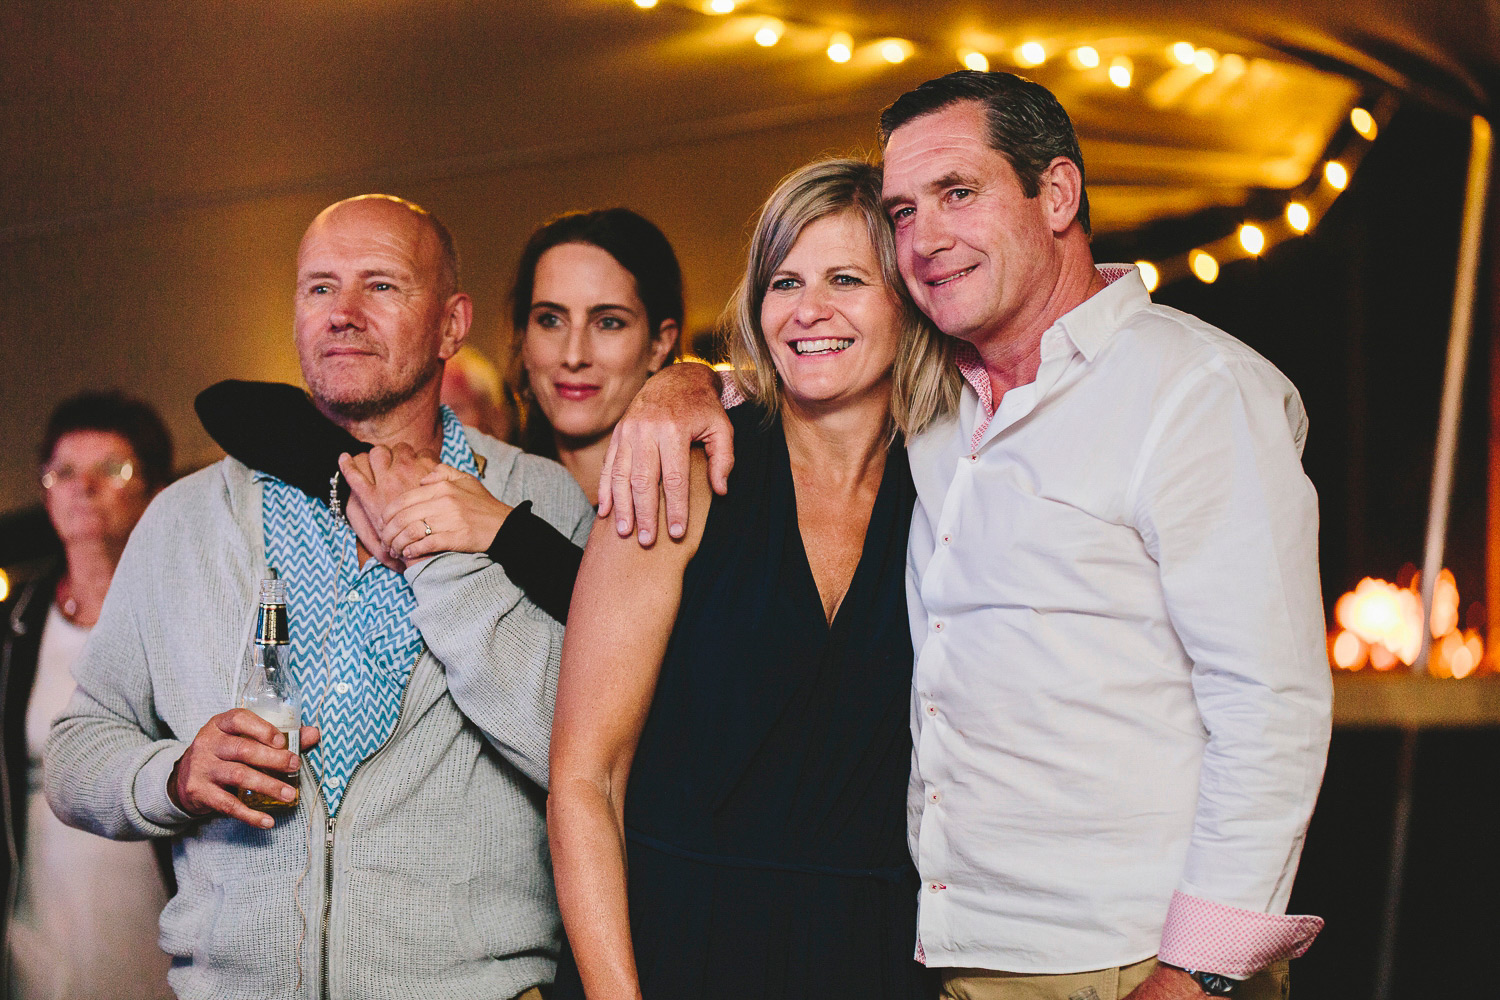 cape-town-wedding-photographer-western-cape-constansia-camilla-charlie-ray116.jpg